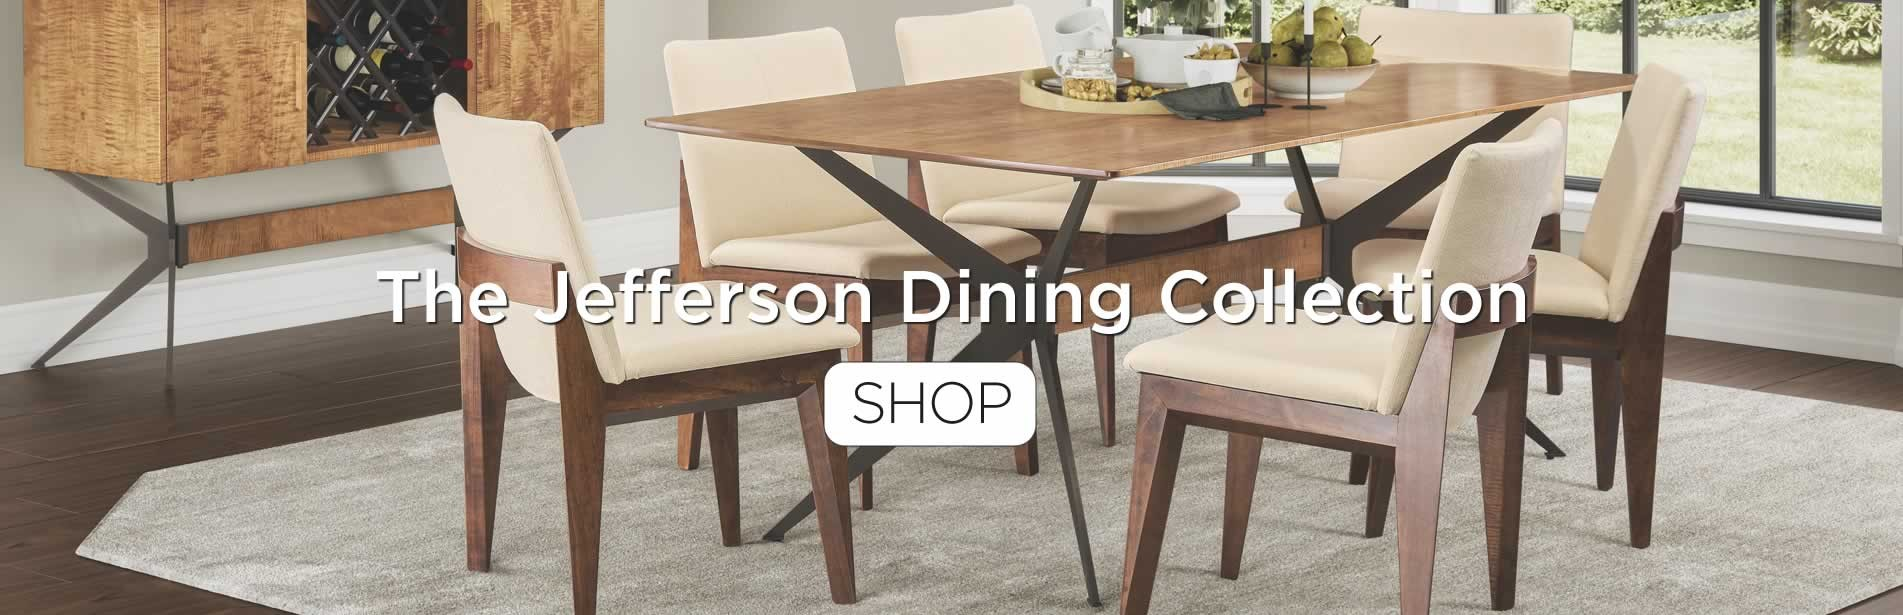 Jefferson Dining Collection